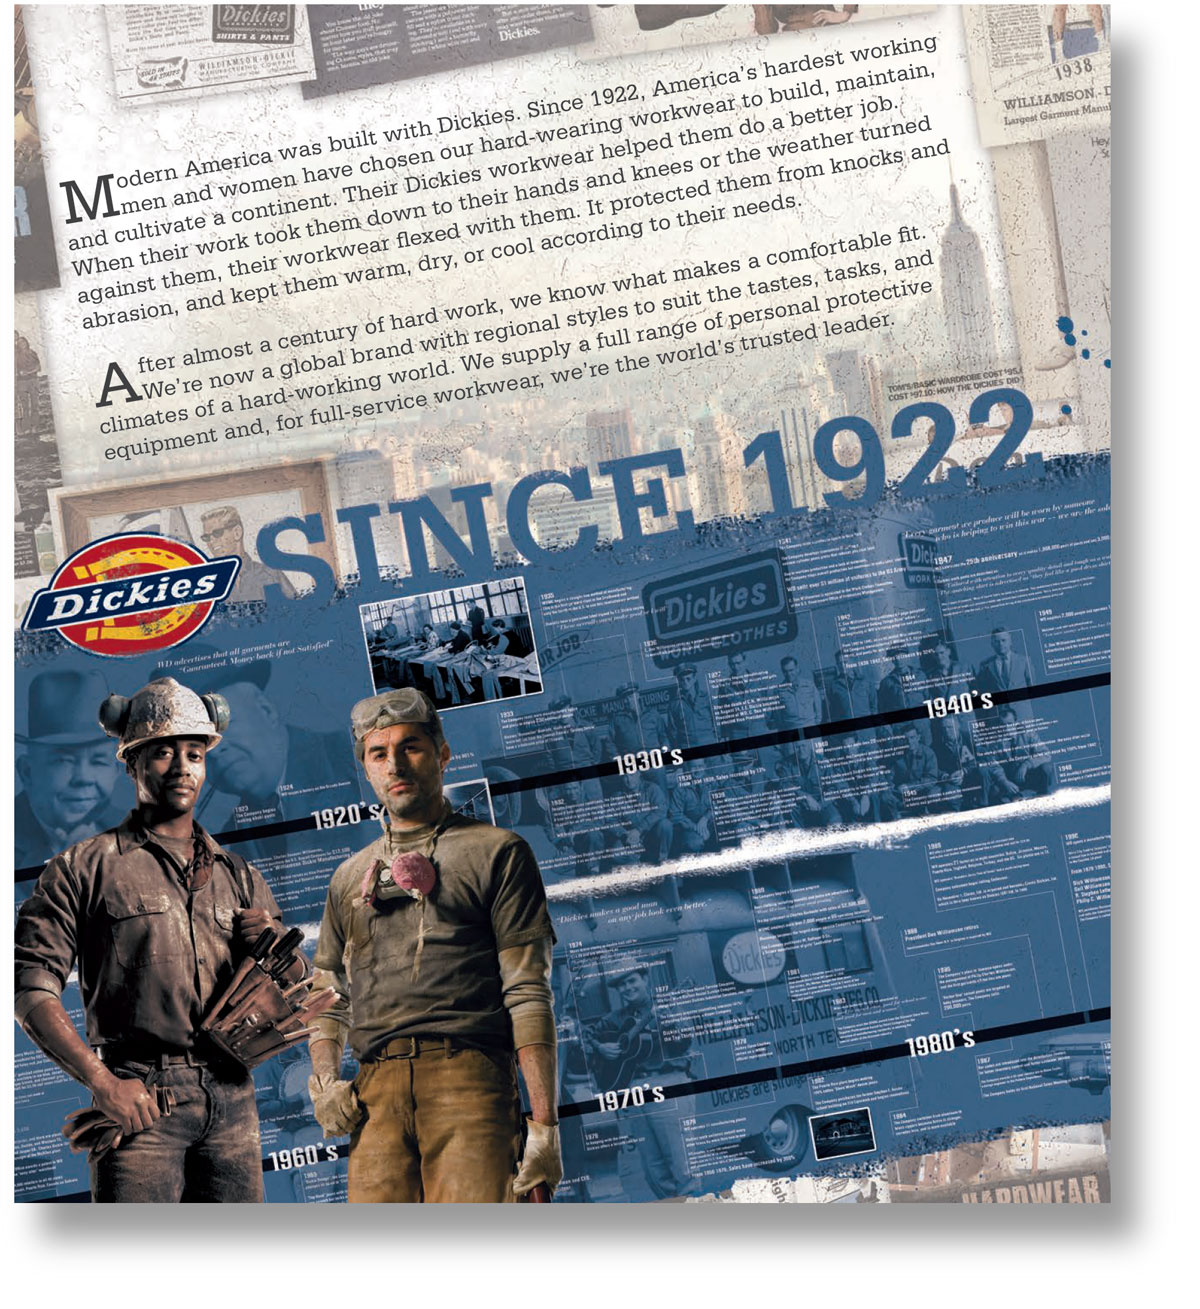 Intro page from the 2016 Dickies workwear catalogue